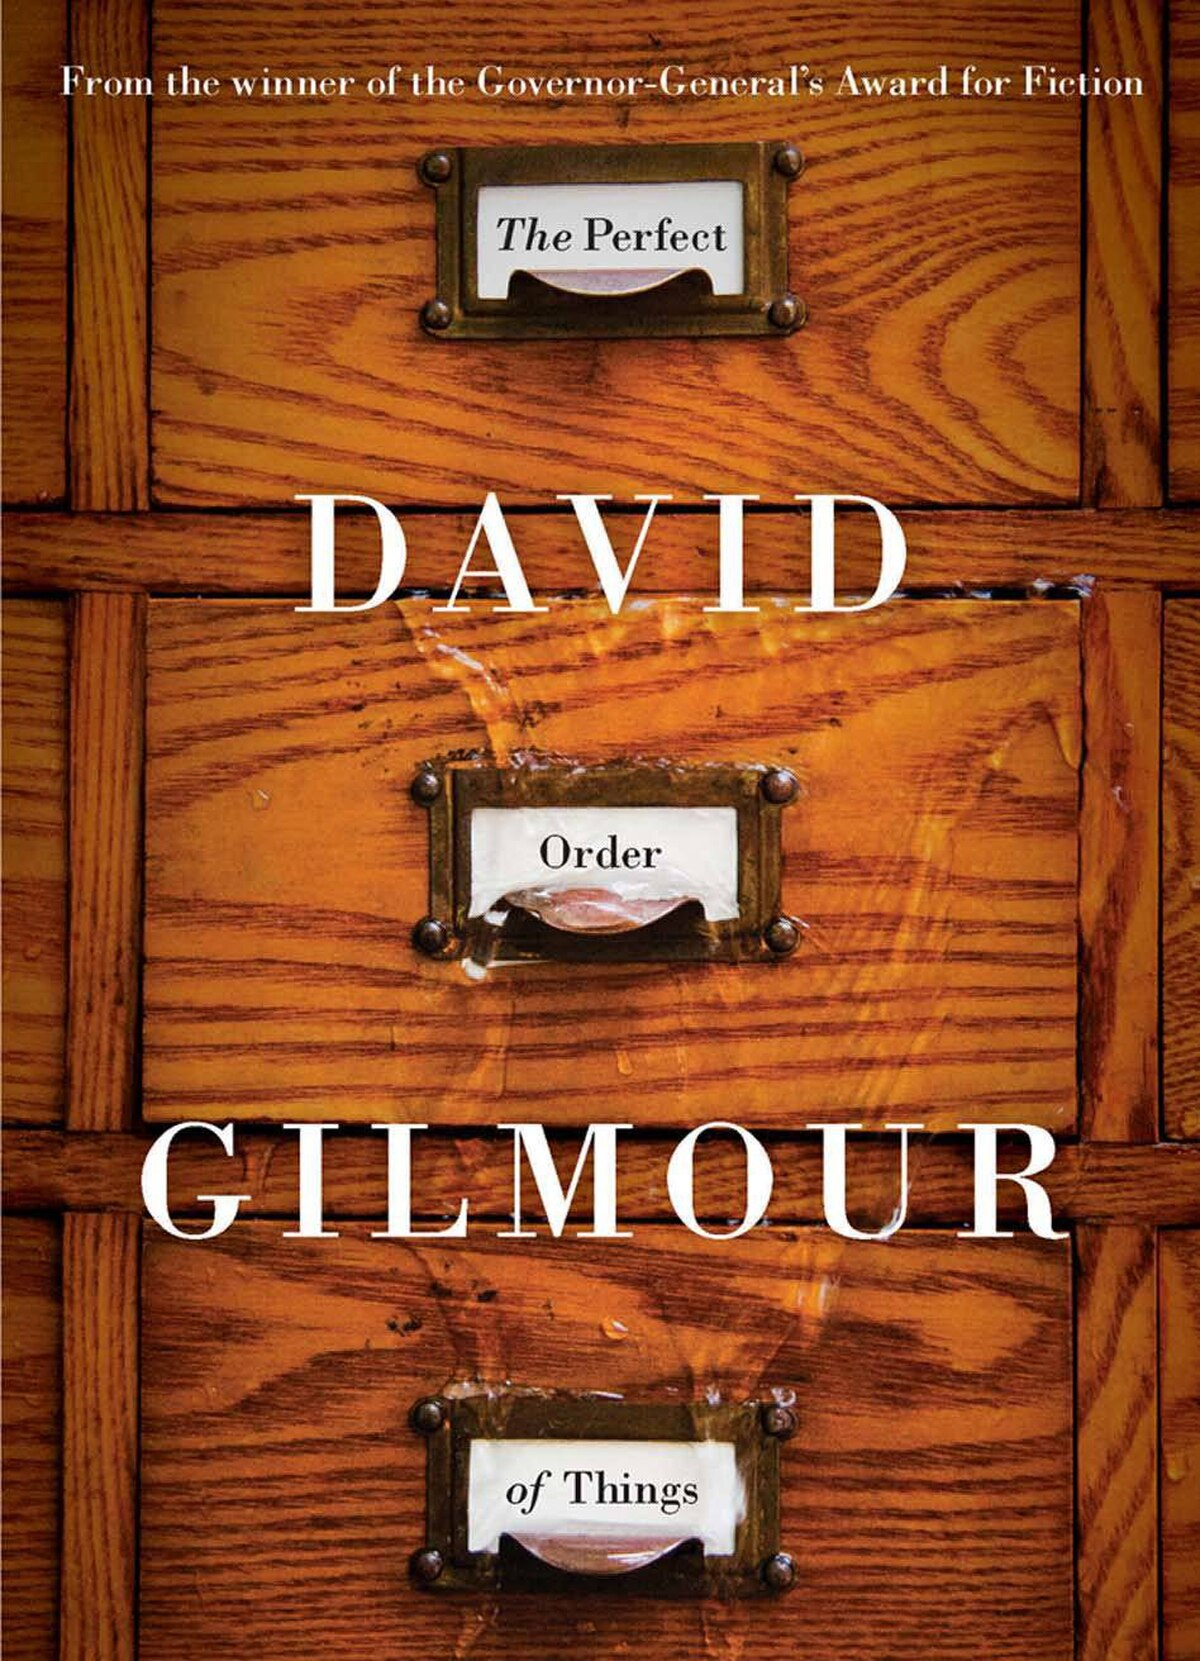 THE PERFECT ORDER OF THINGS By David Gilmour (Thomas Allen) Gilmour's delicious, subversive, self-mocking novel features a narrator who is a composite from all his other books. He revisits the places he has suffered, hoping to balance old scores and relearn early lessons. In the process, he is transformed from a man who likes to watch his own reflection into a man who reflects on his failings and losses. – Aritha van Herk